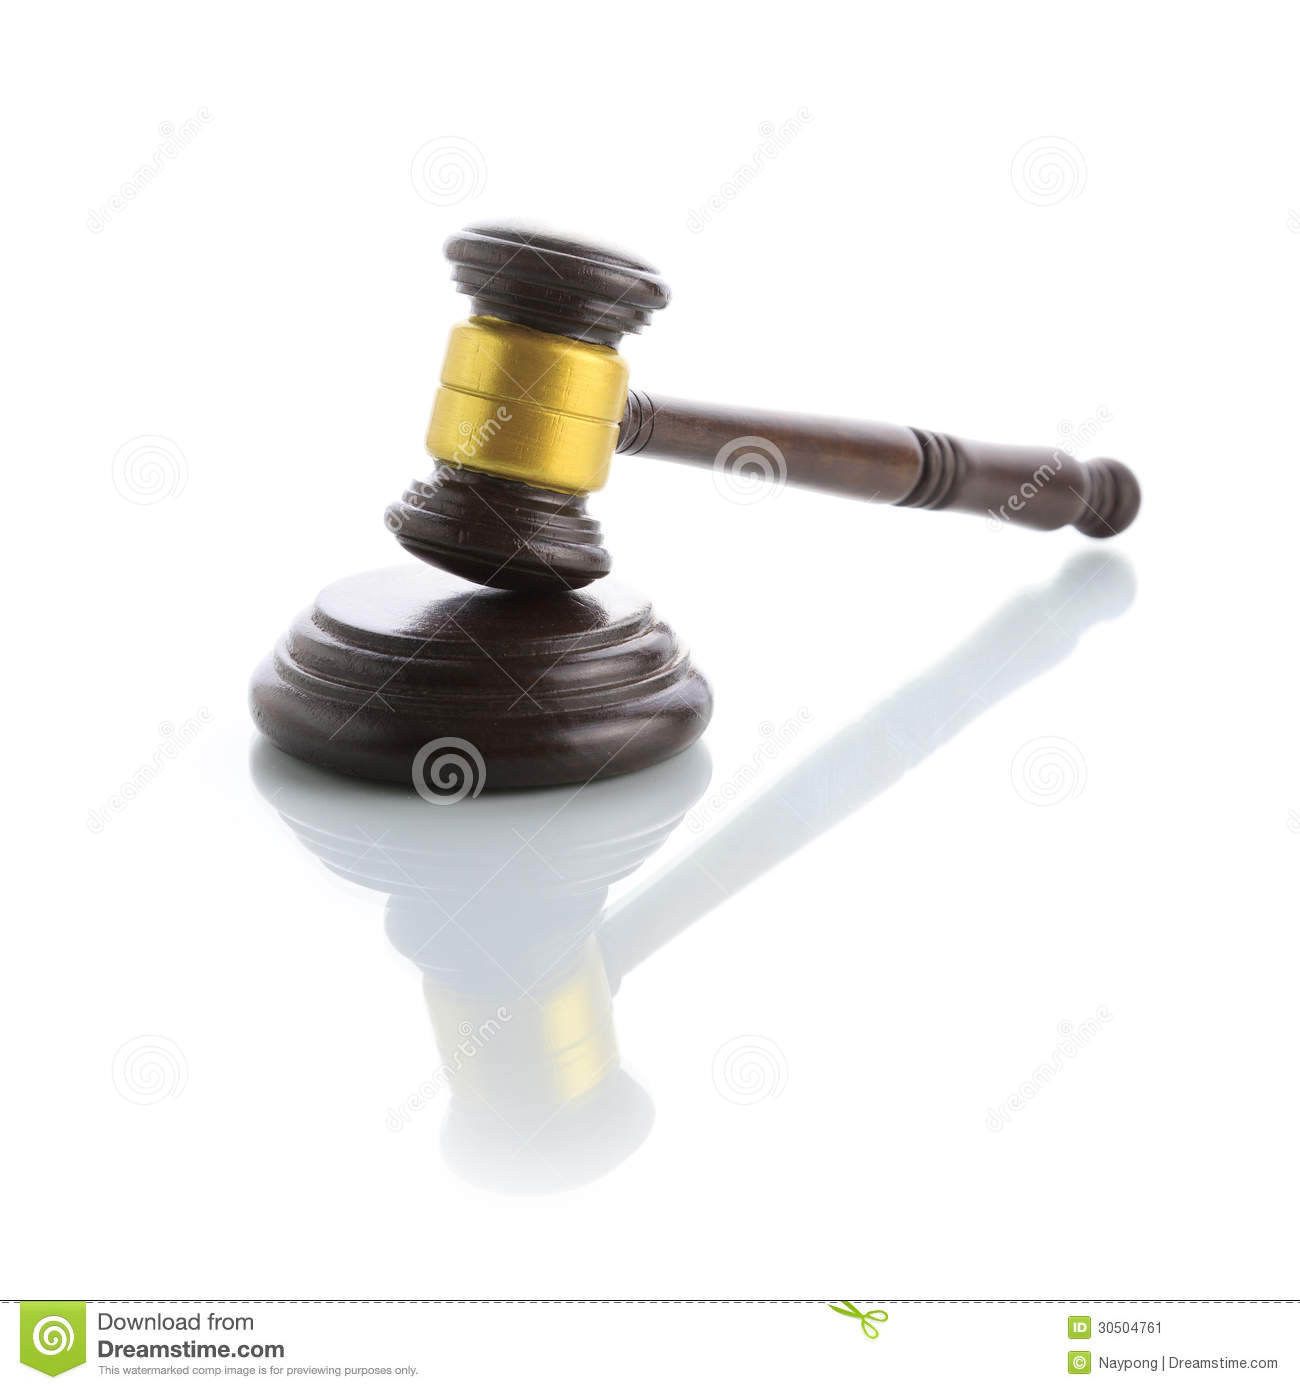 Judge Gavel Stock Image - Image: 30504761